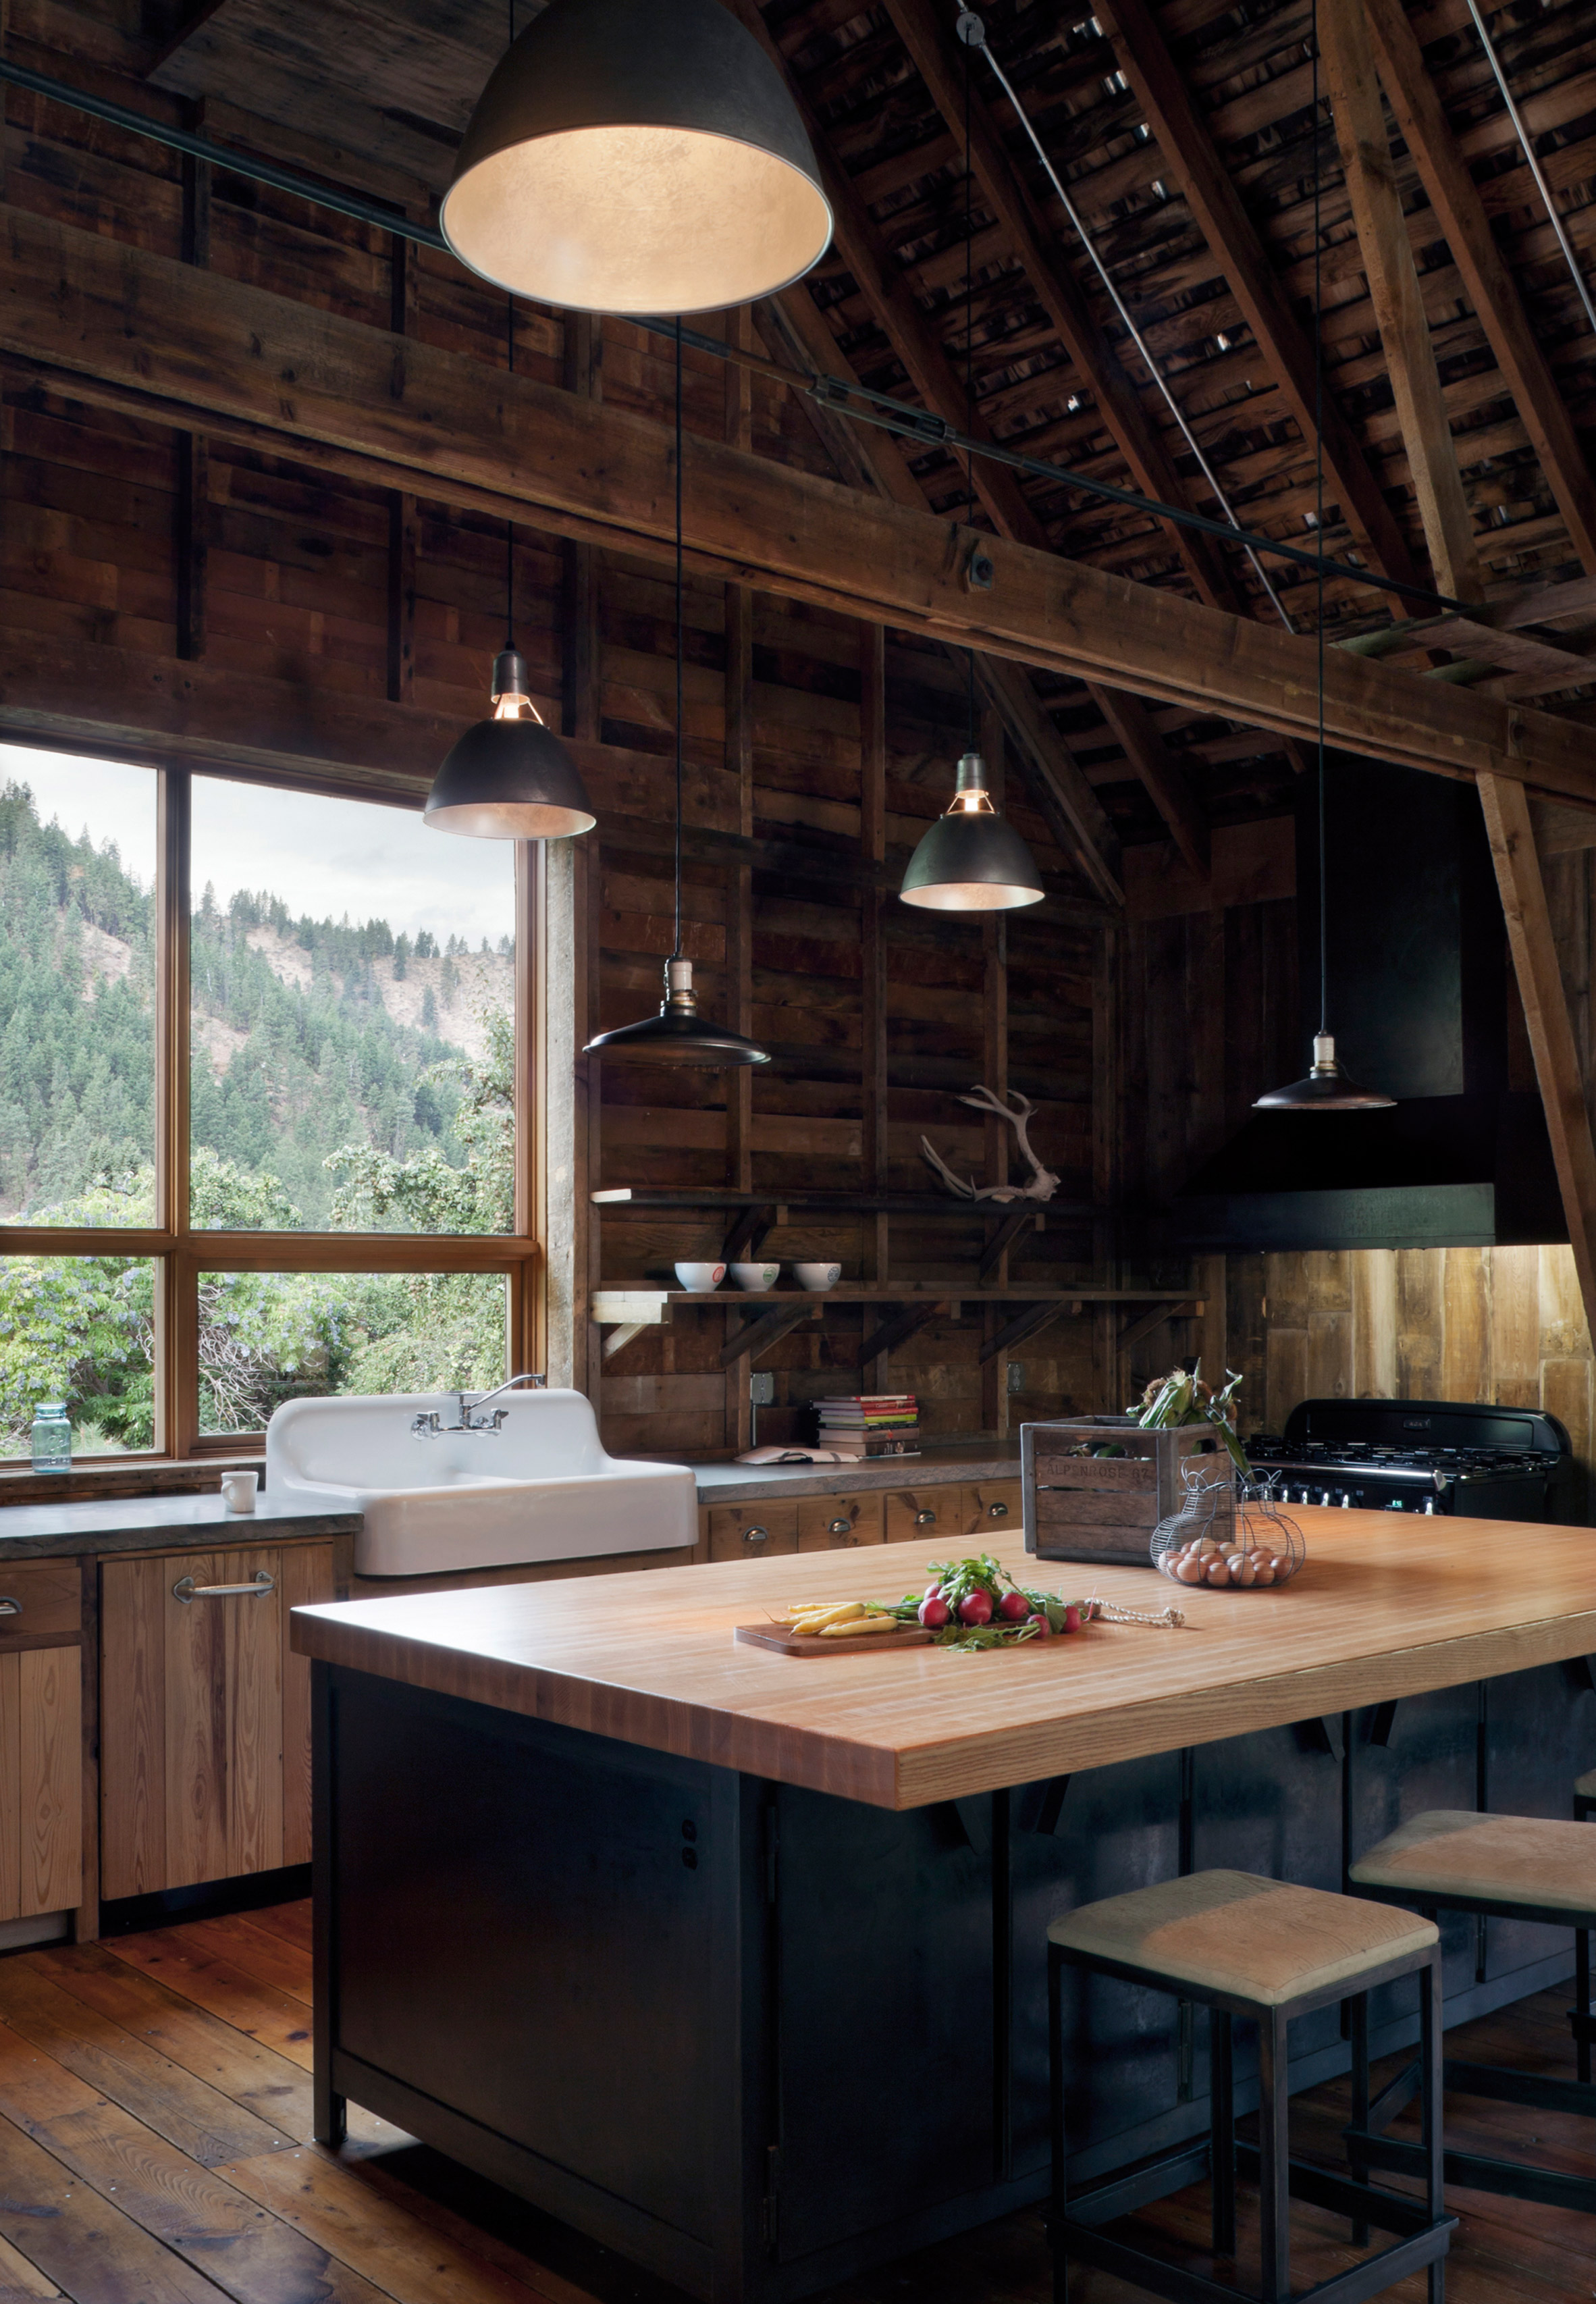 Mw works architecture - Clocking In At 3 875 Square Feet The Structure Now Named The Canyon Barn Pretty Much Needed A Total Overhaul To Be Livable Including The Addition Of